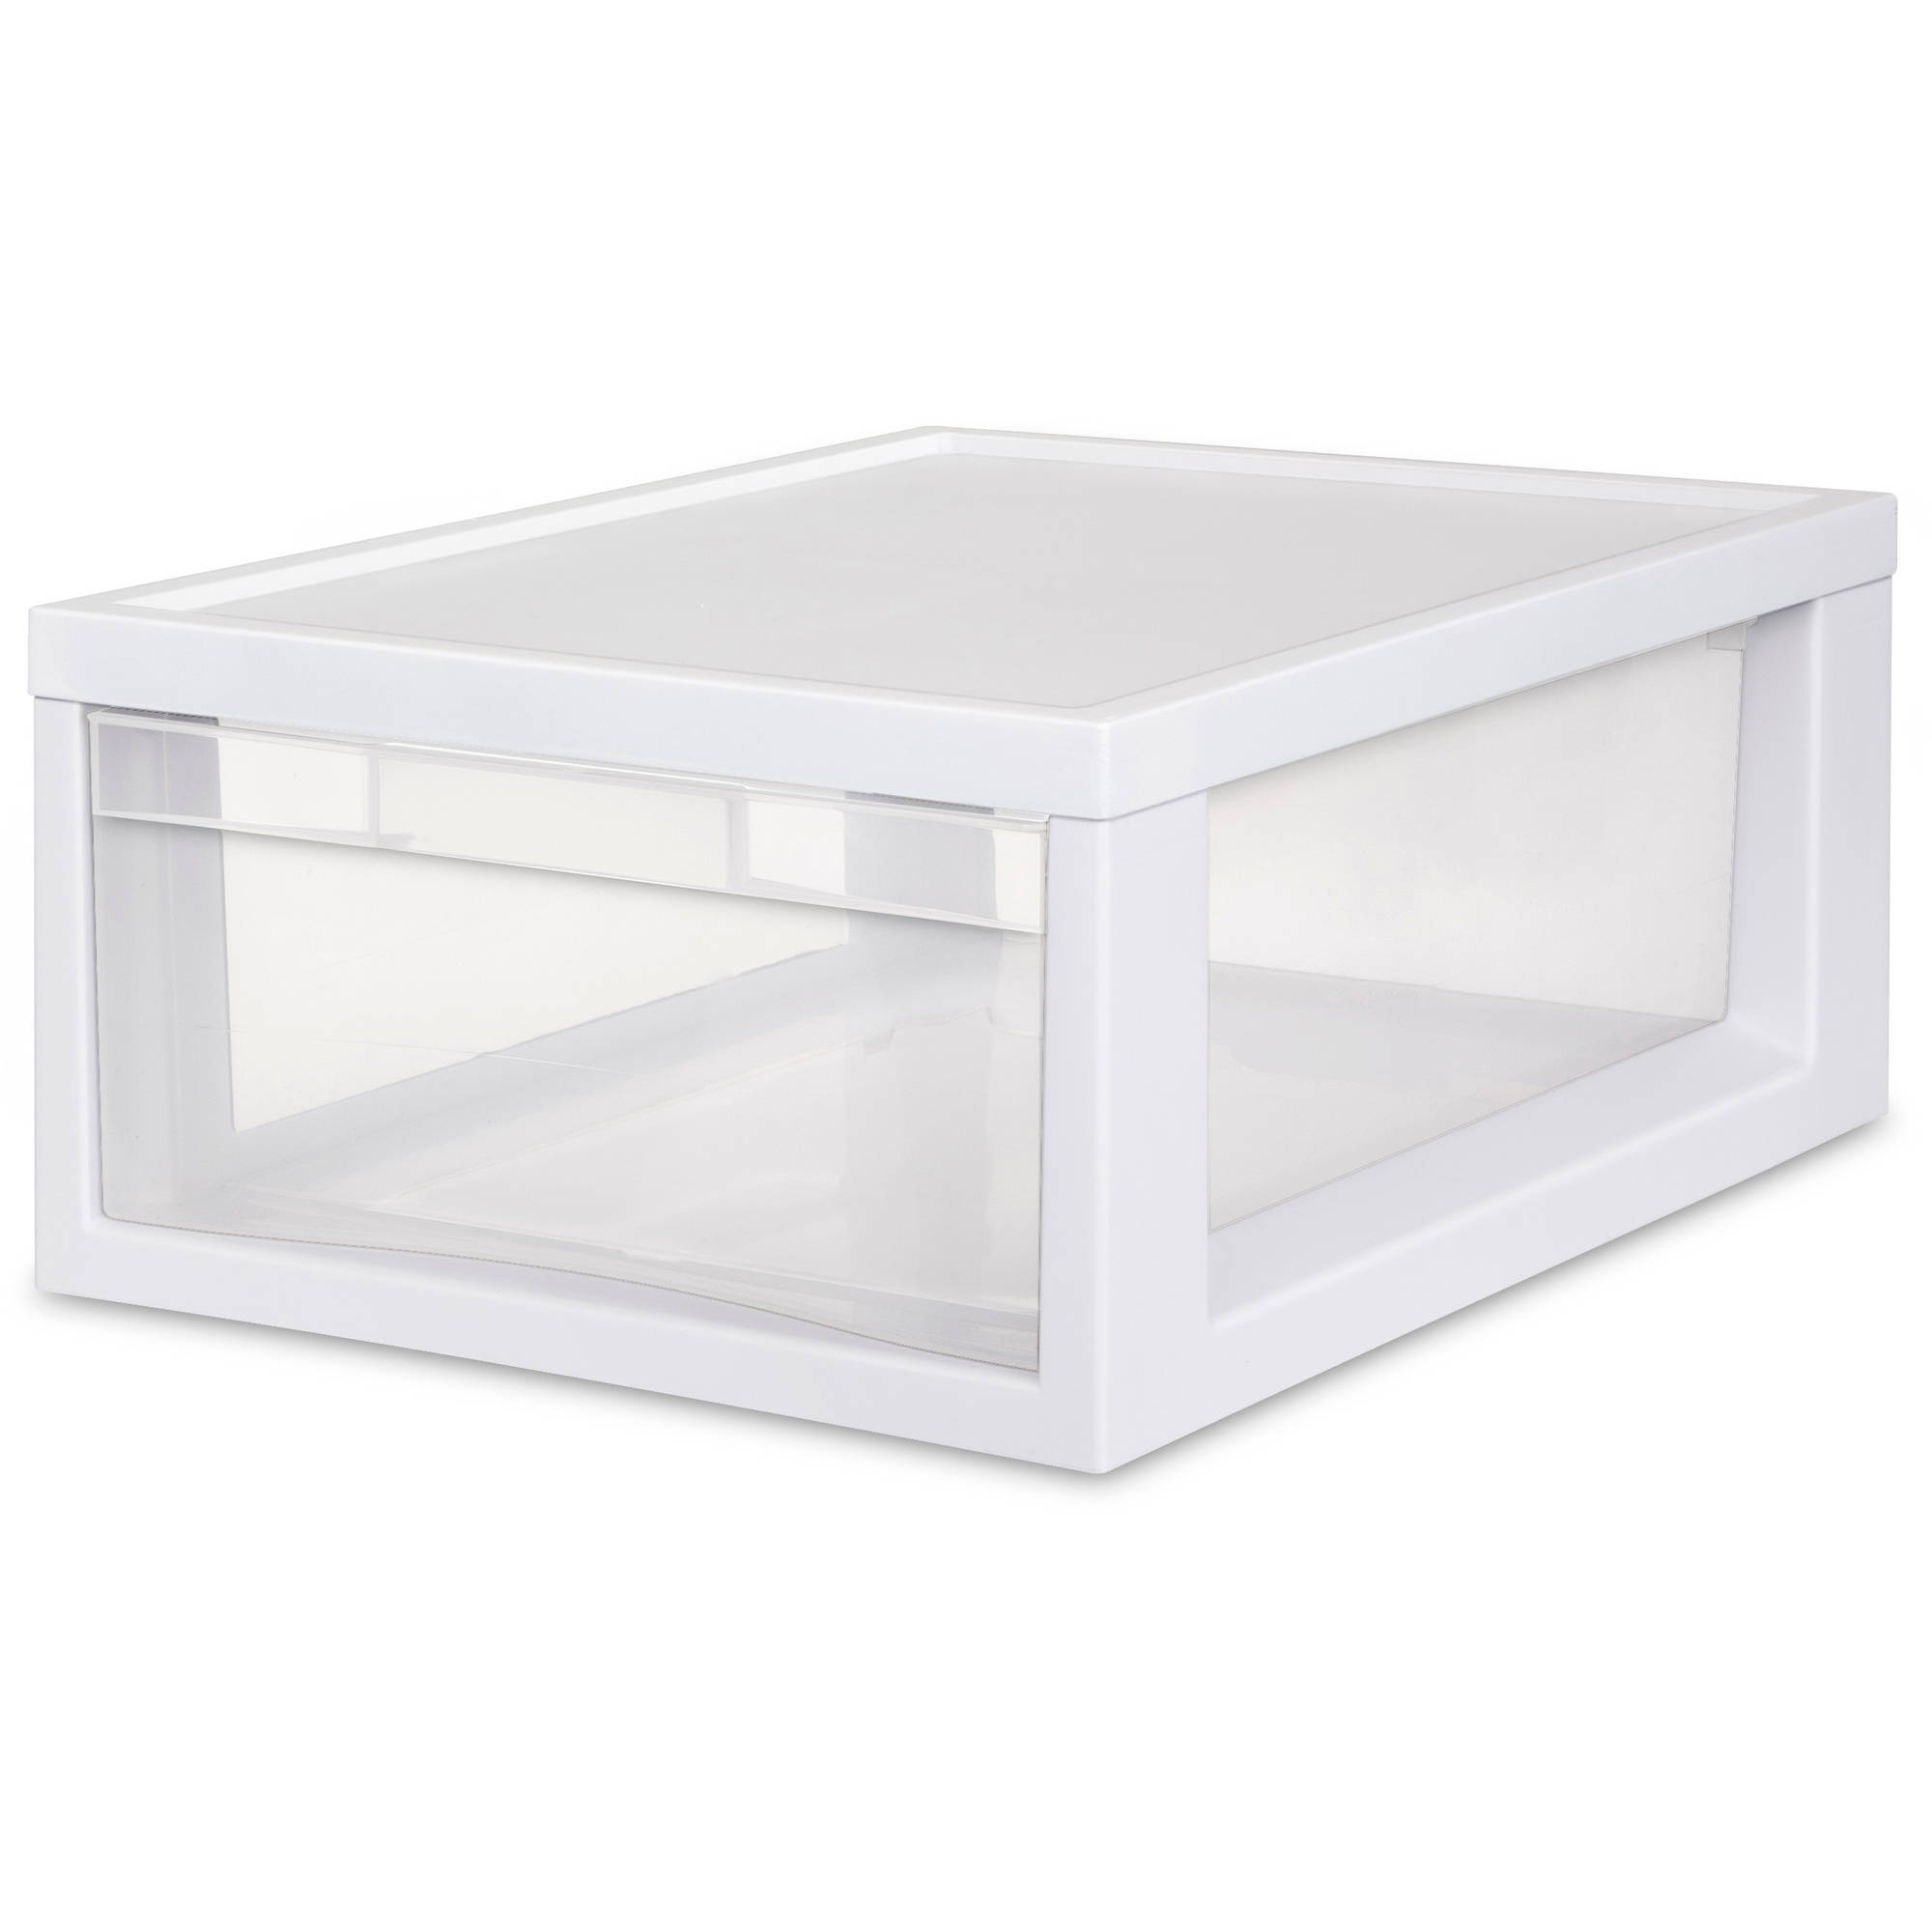 Sterilite Medium Modular Drawers- White (Available in Case of 6 or Single Unit)